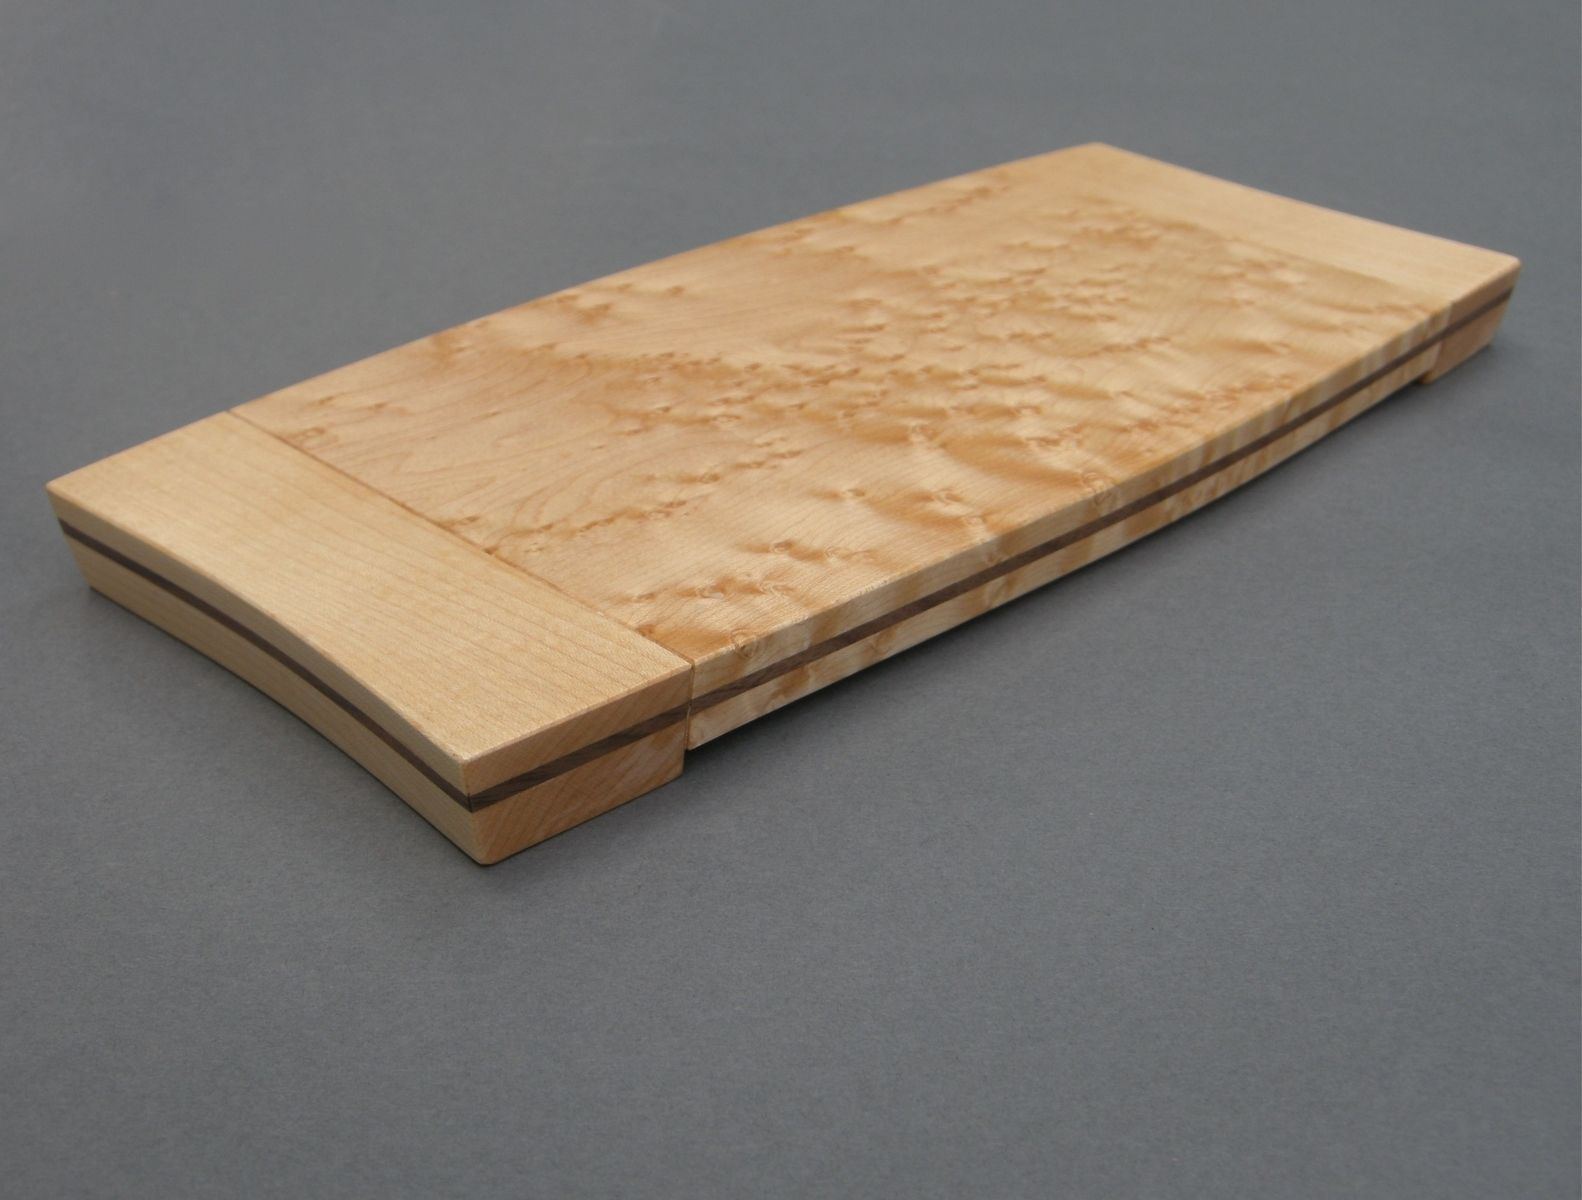 Custom birdseye maple cutting board by corwin butterworth